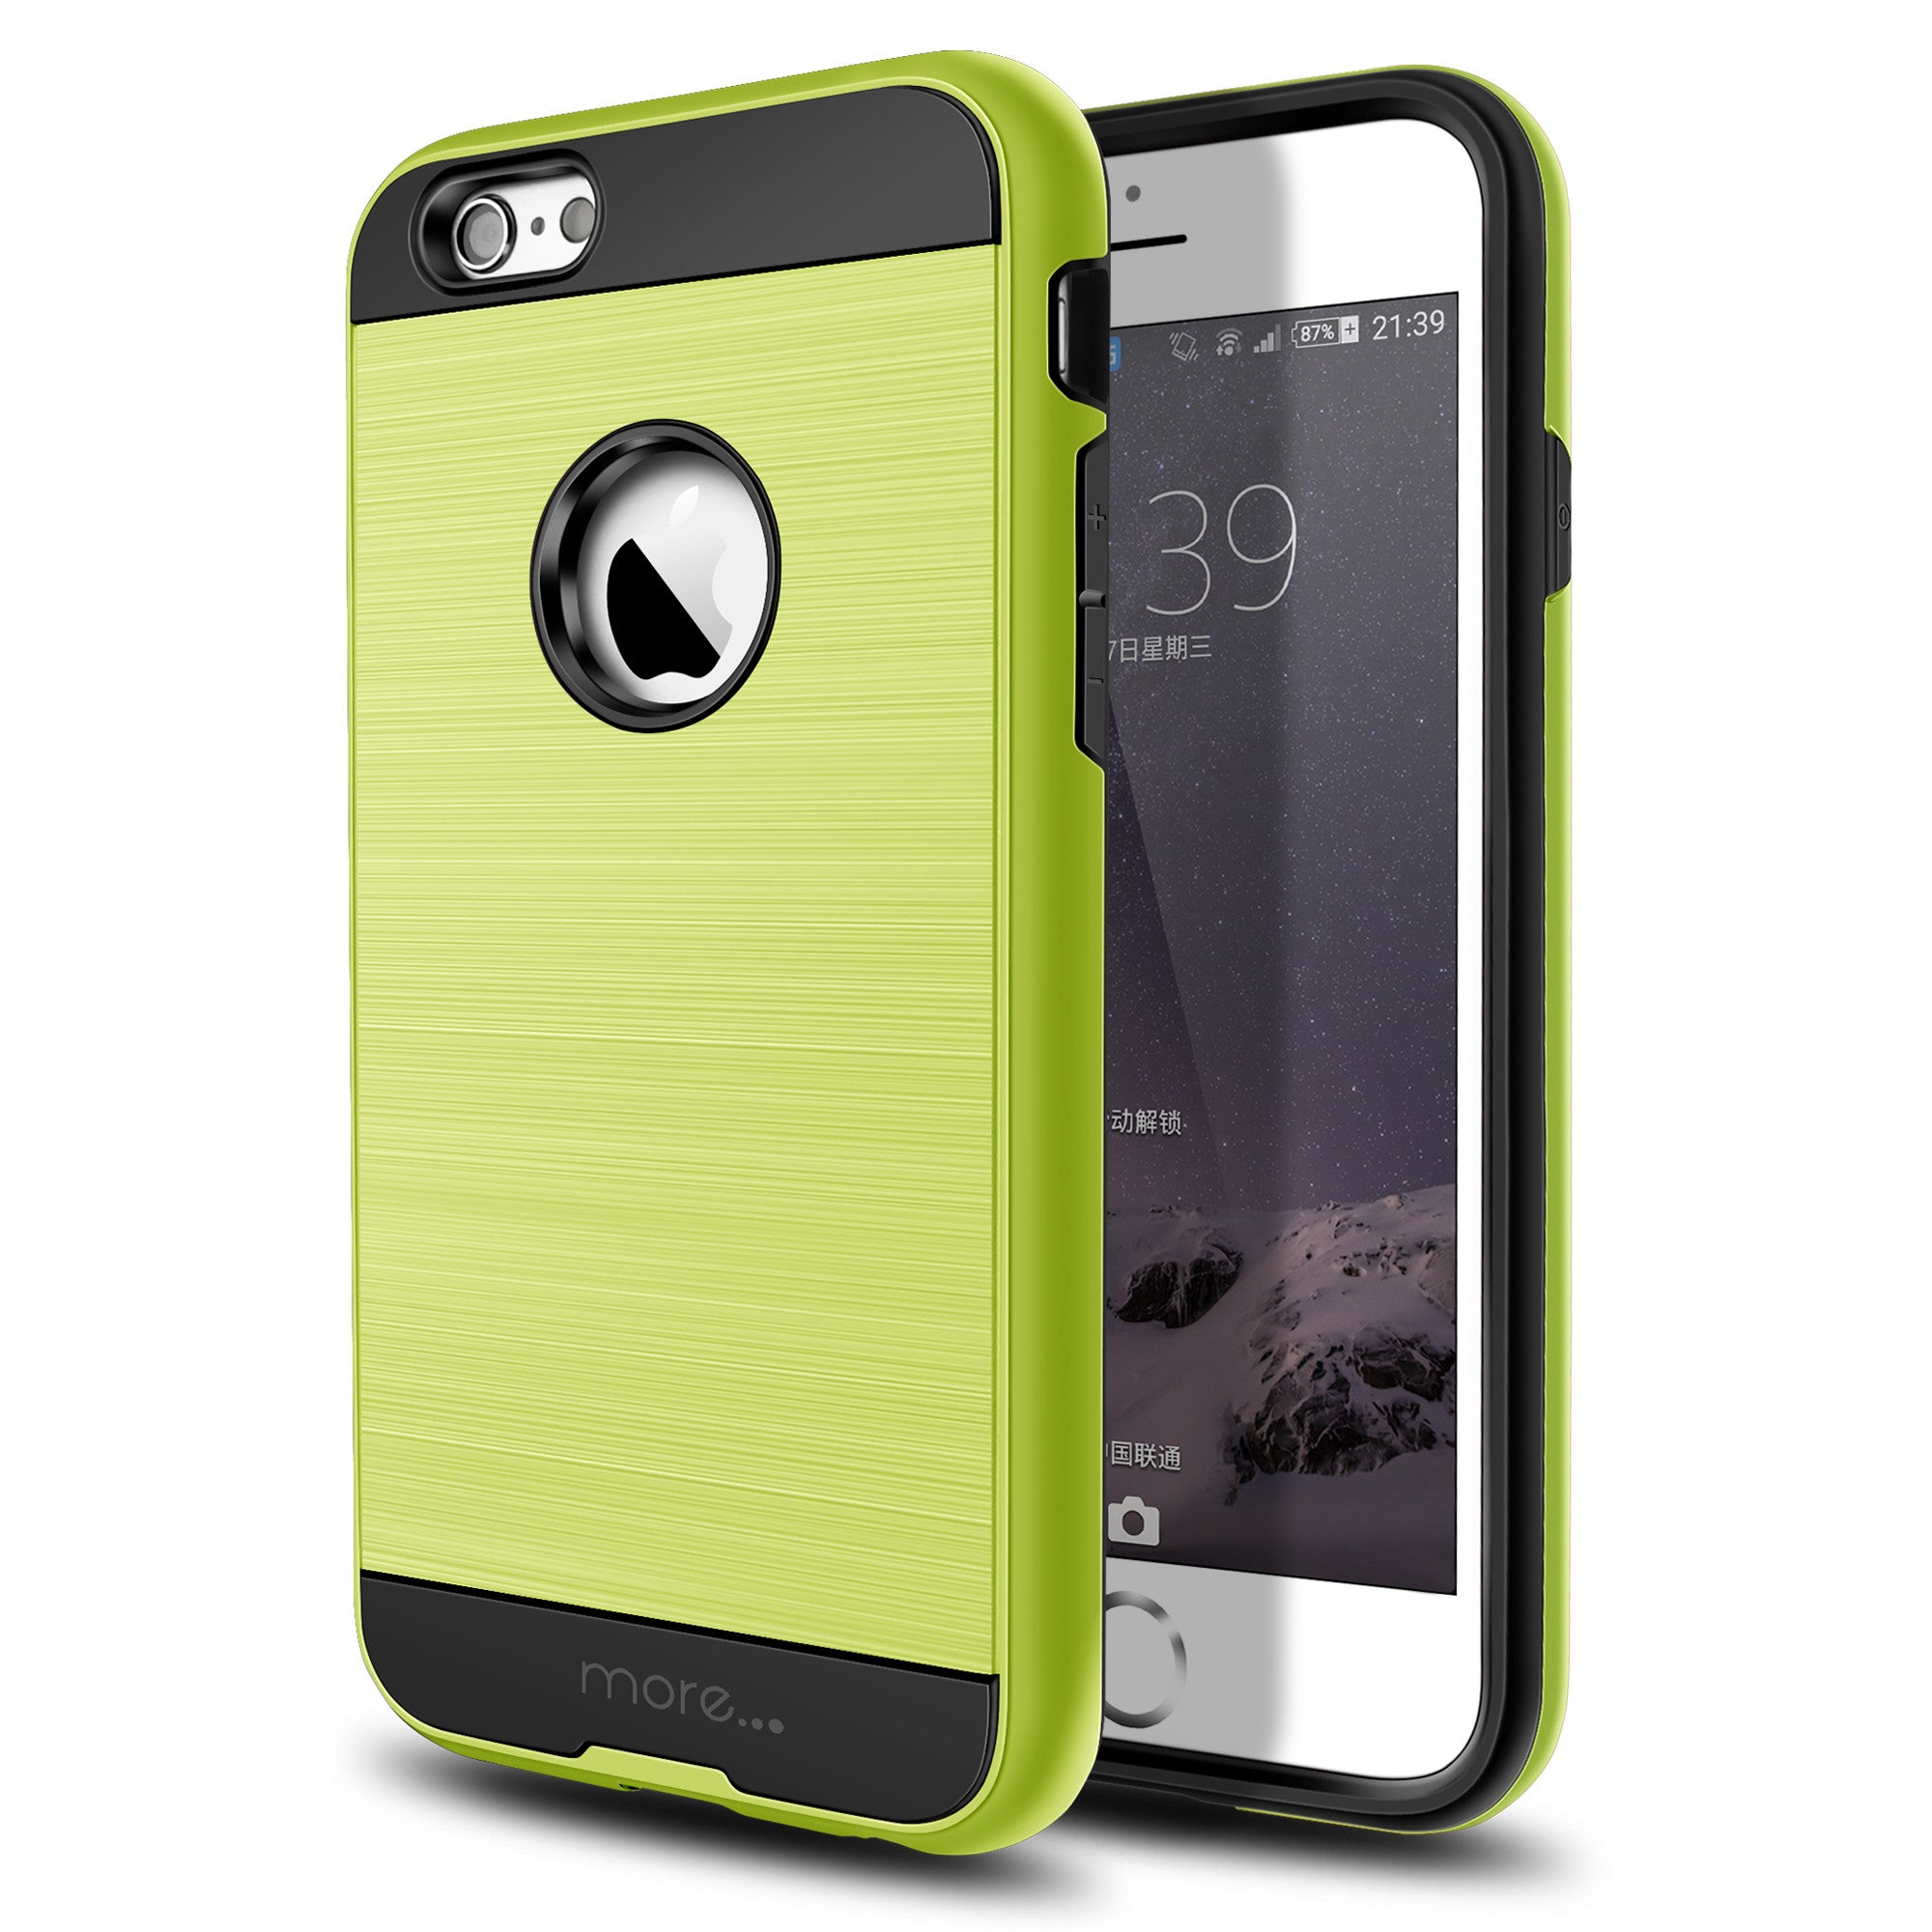 iphone 6 lime green case